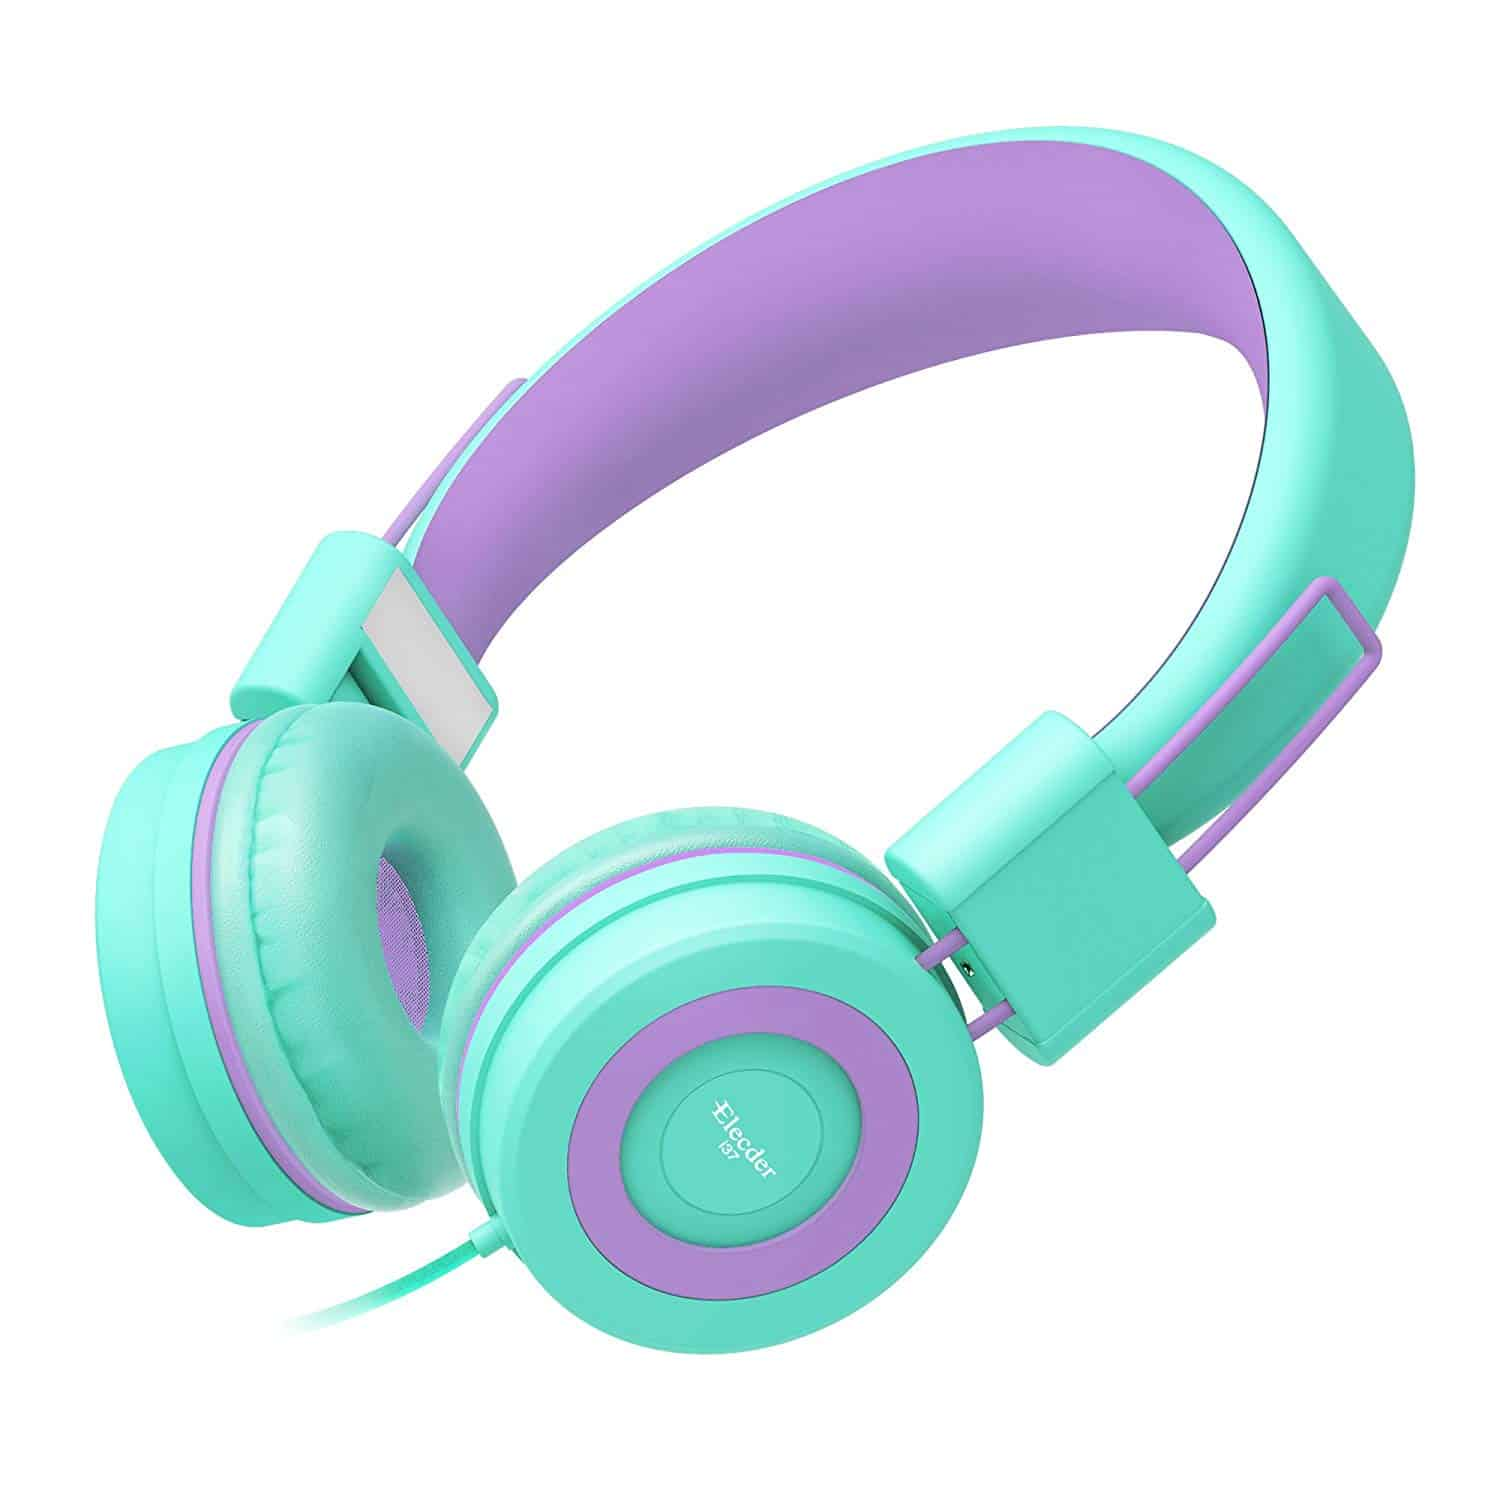 Kid-sized Headphones - Kids Travel Accessories